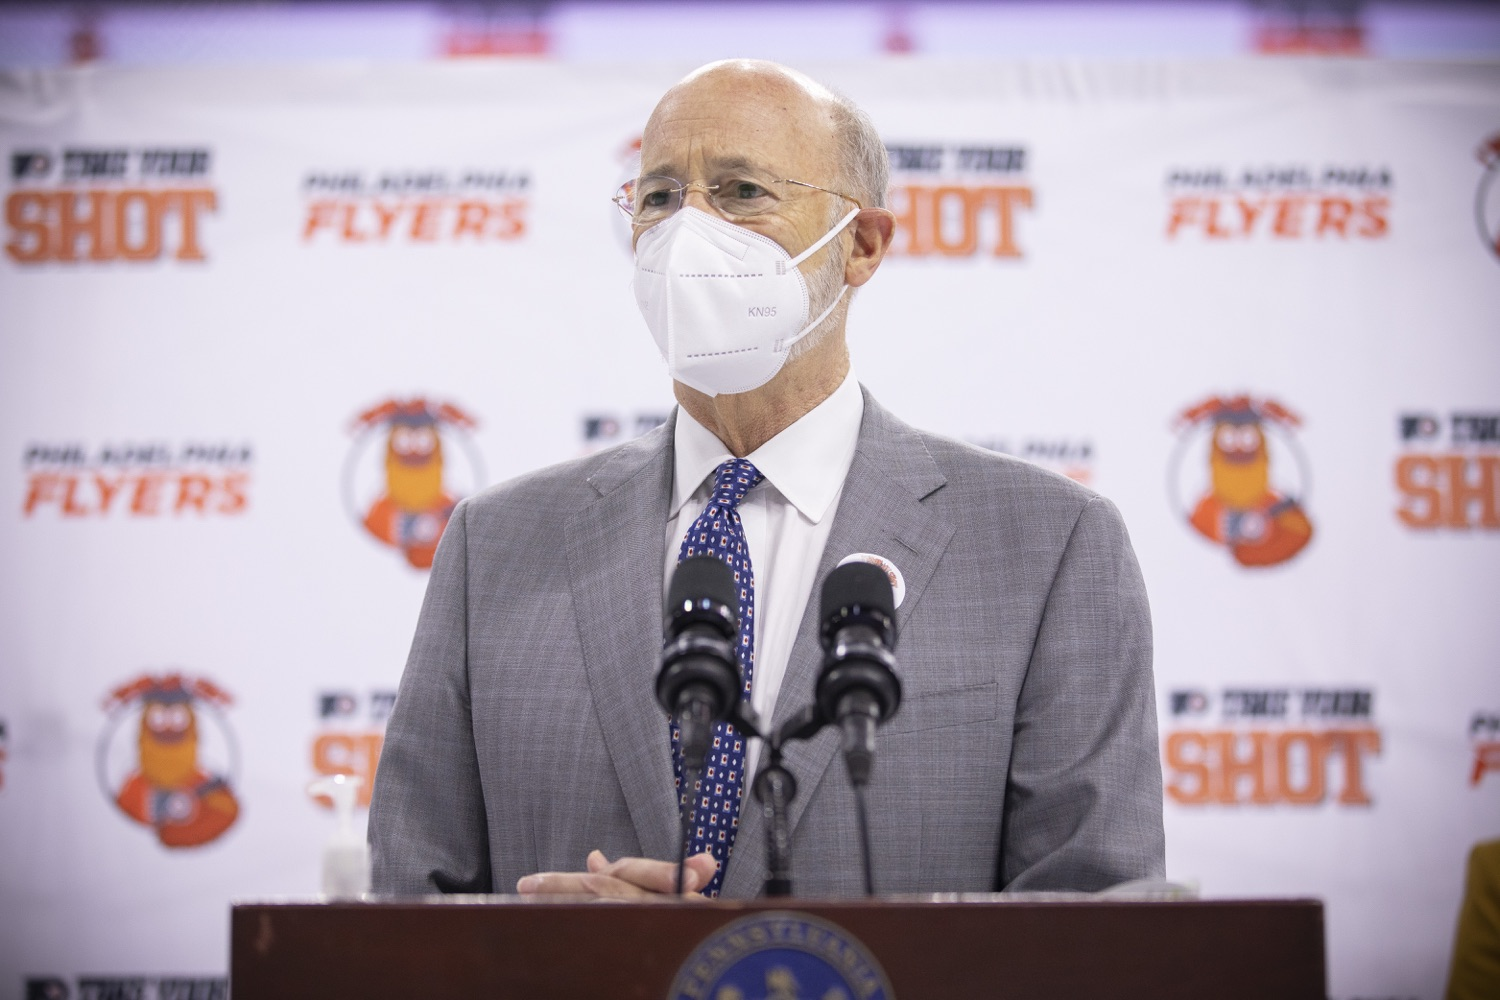 "<a href=""https://filesource.wostreaming.net/commonwealthofpa/photo/18727_gov_vaccines_dz_020.jpg"" target=""_blank"">⇣ Download Photo<br></a>Pennsylvania Governor Tom Wolf speaking with the press.   Governor Tom Wolf today visited the Philadelphia Flyers organization at the Wells Fargo Center in Philadelphia to discuss COVID-19 vaccine efforts in Pennsylvania. The Flyers recently launched a comprehensive COVID-19 vaccine campaign, Take Your Shot, encouraging Pennsylvanians to get vaccinated.  Philadelphia, PA  MAY 3, 2021"